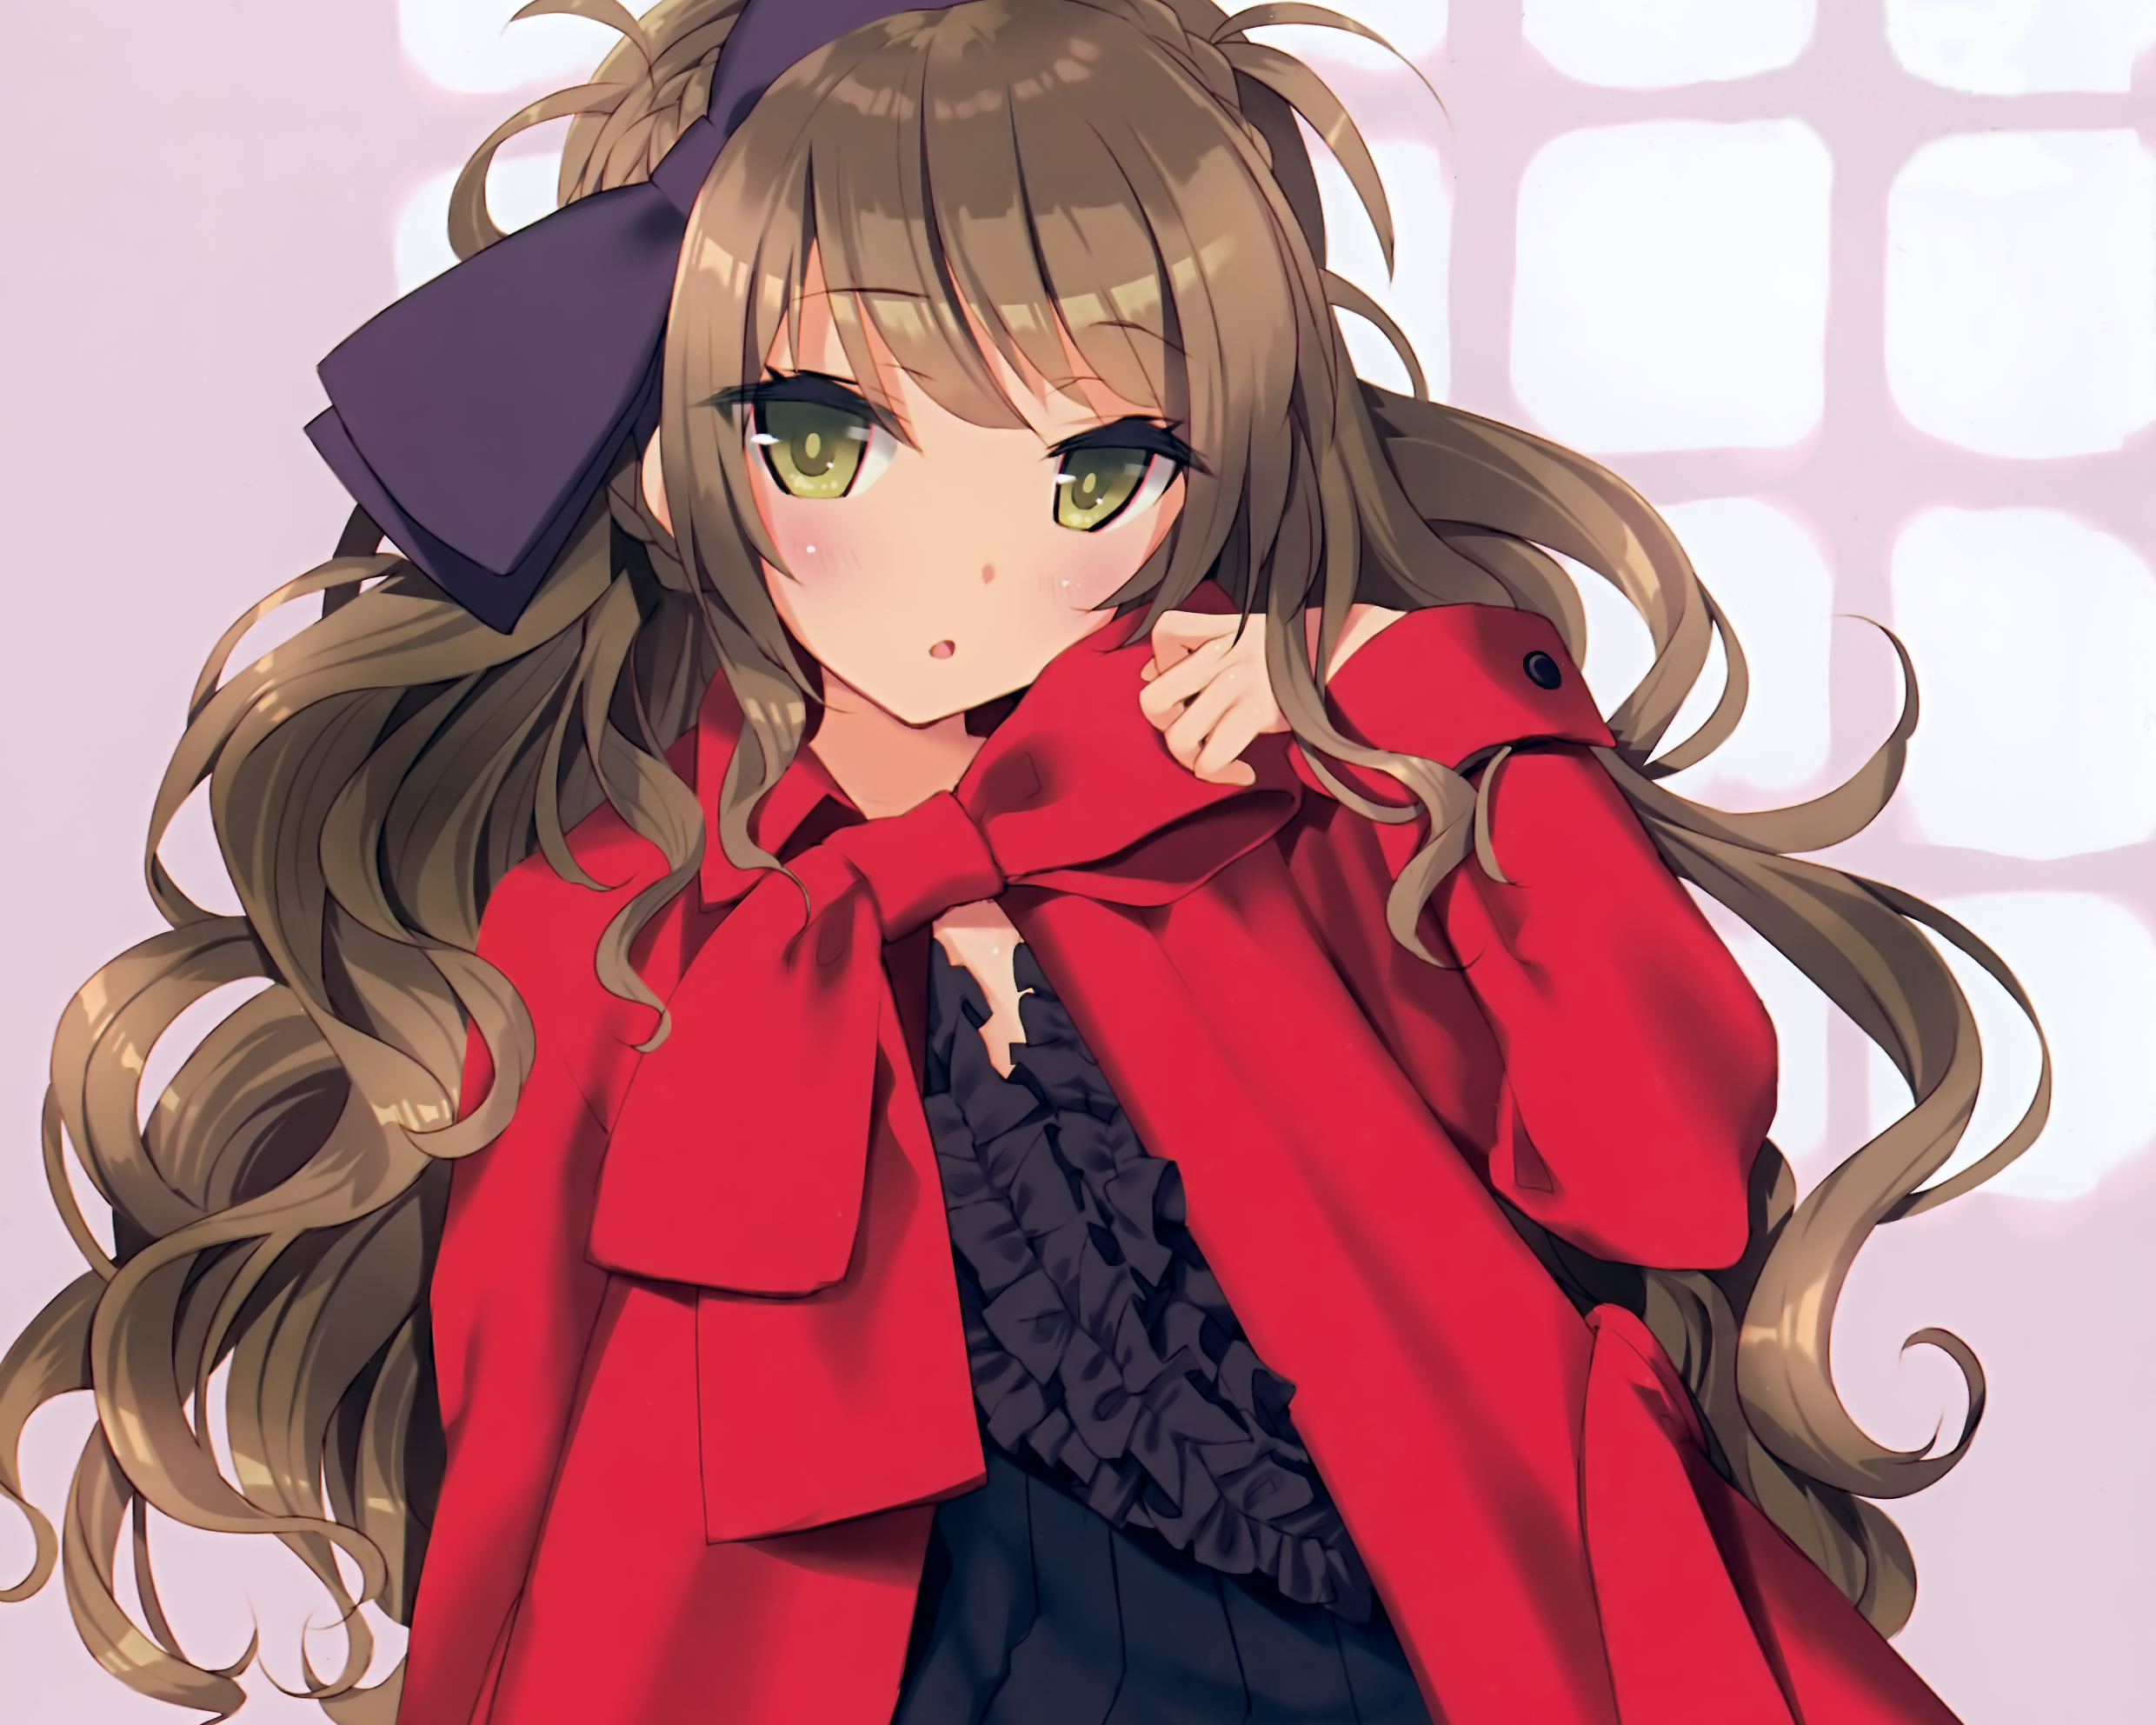 Anime Girl With Long Brown Hair And Green Eyes